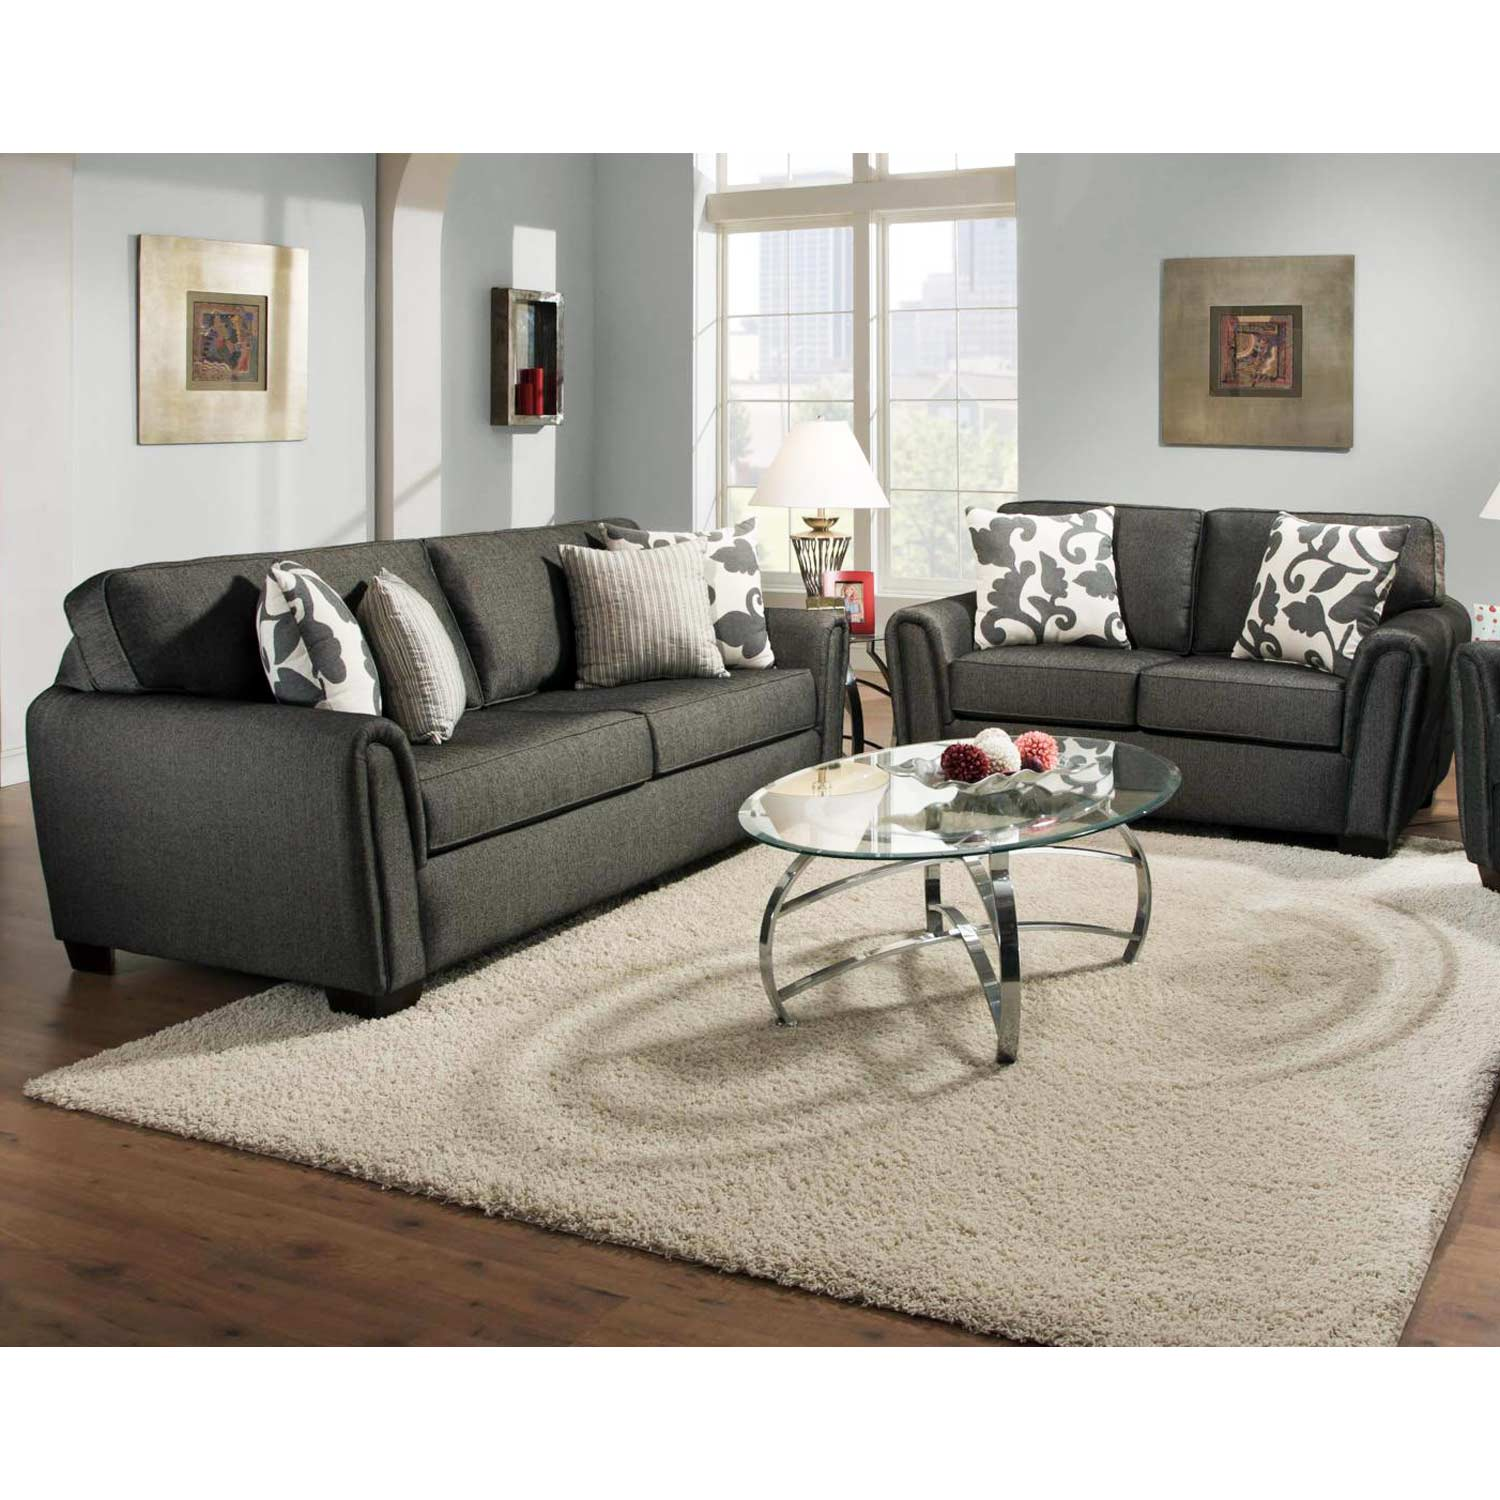 Veronica Modern Loveseat - Block Feet, Talbot Onyx Fabric - CHF-527302